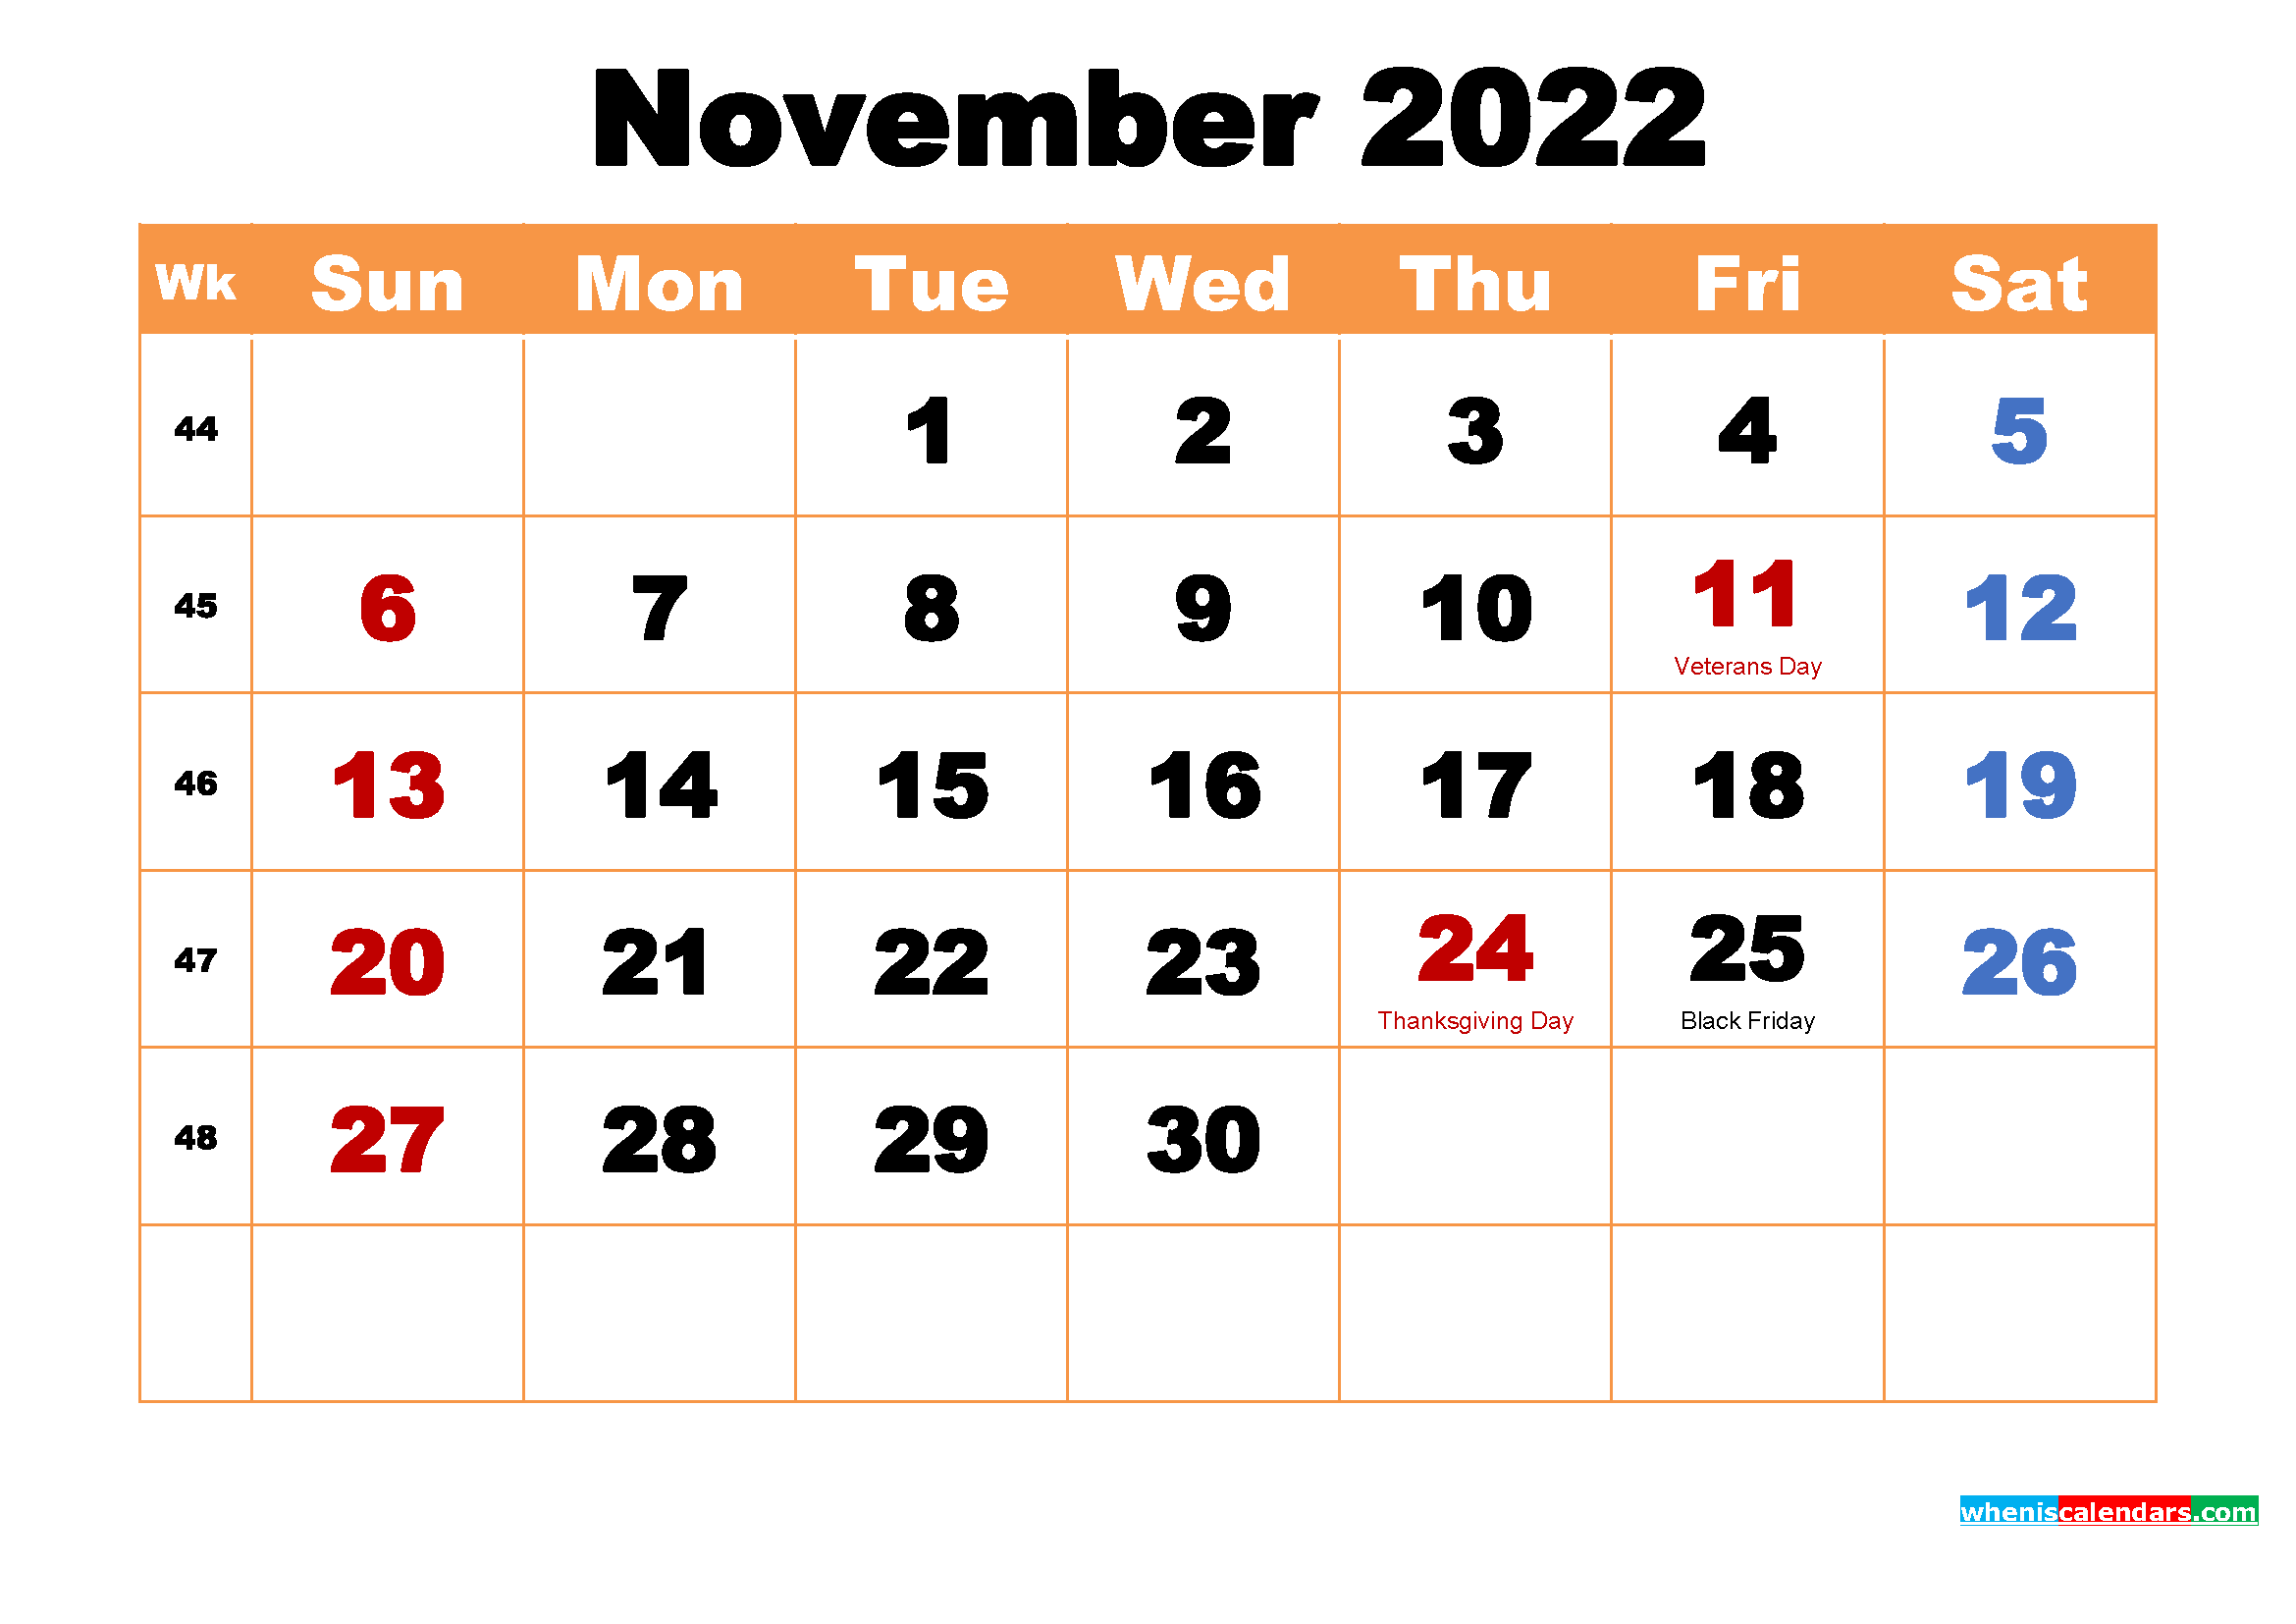 November 2022 Calendar Wallpaper High Resolution